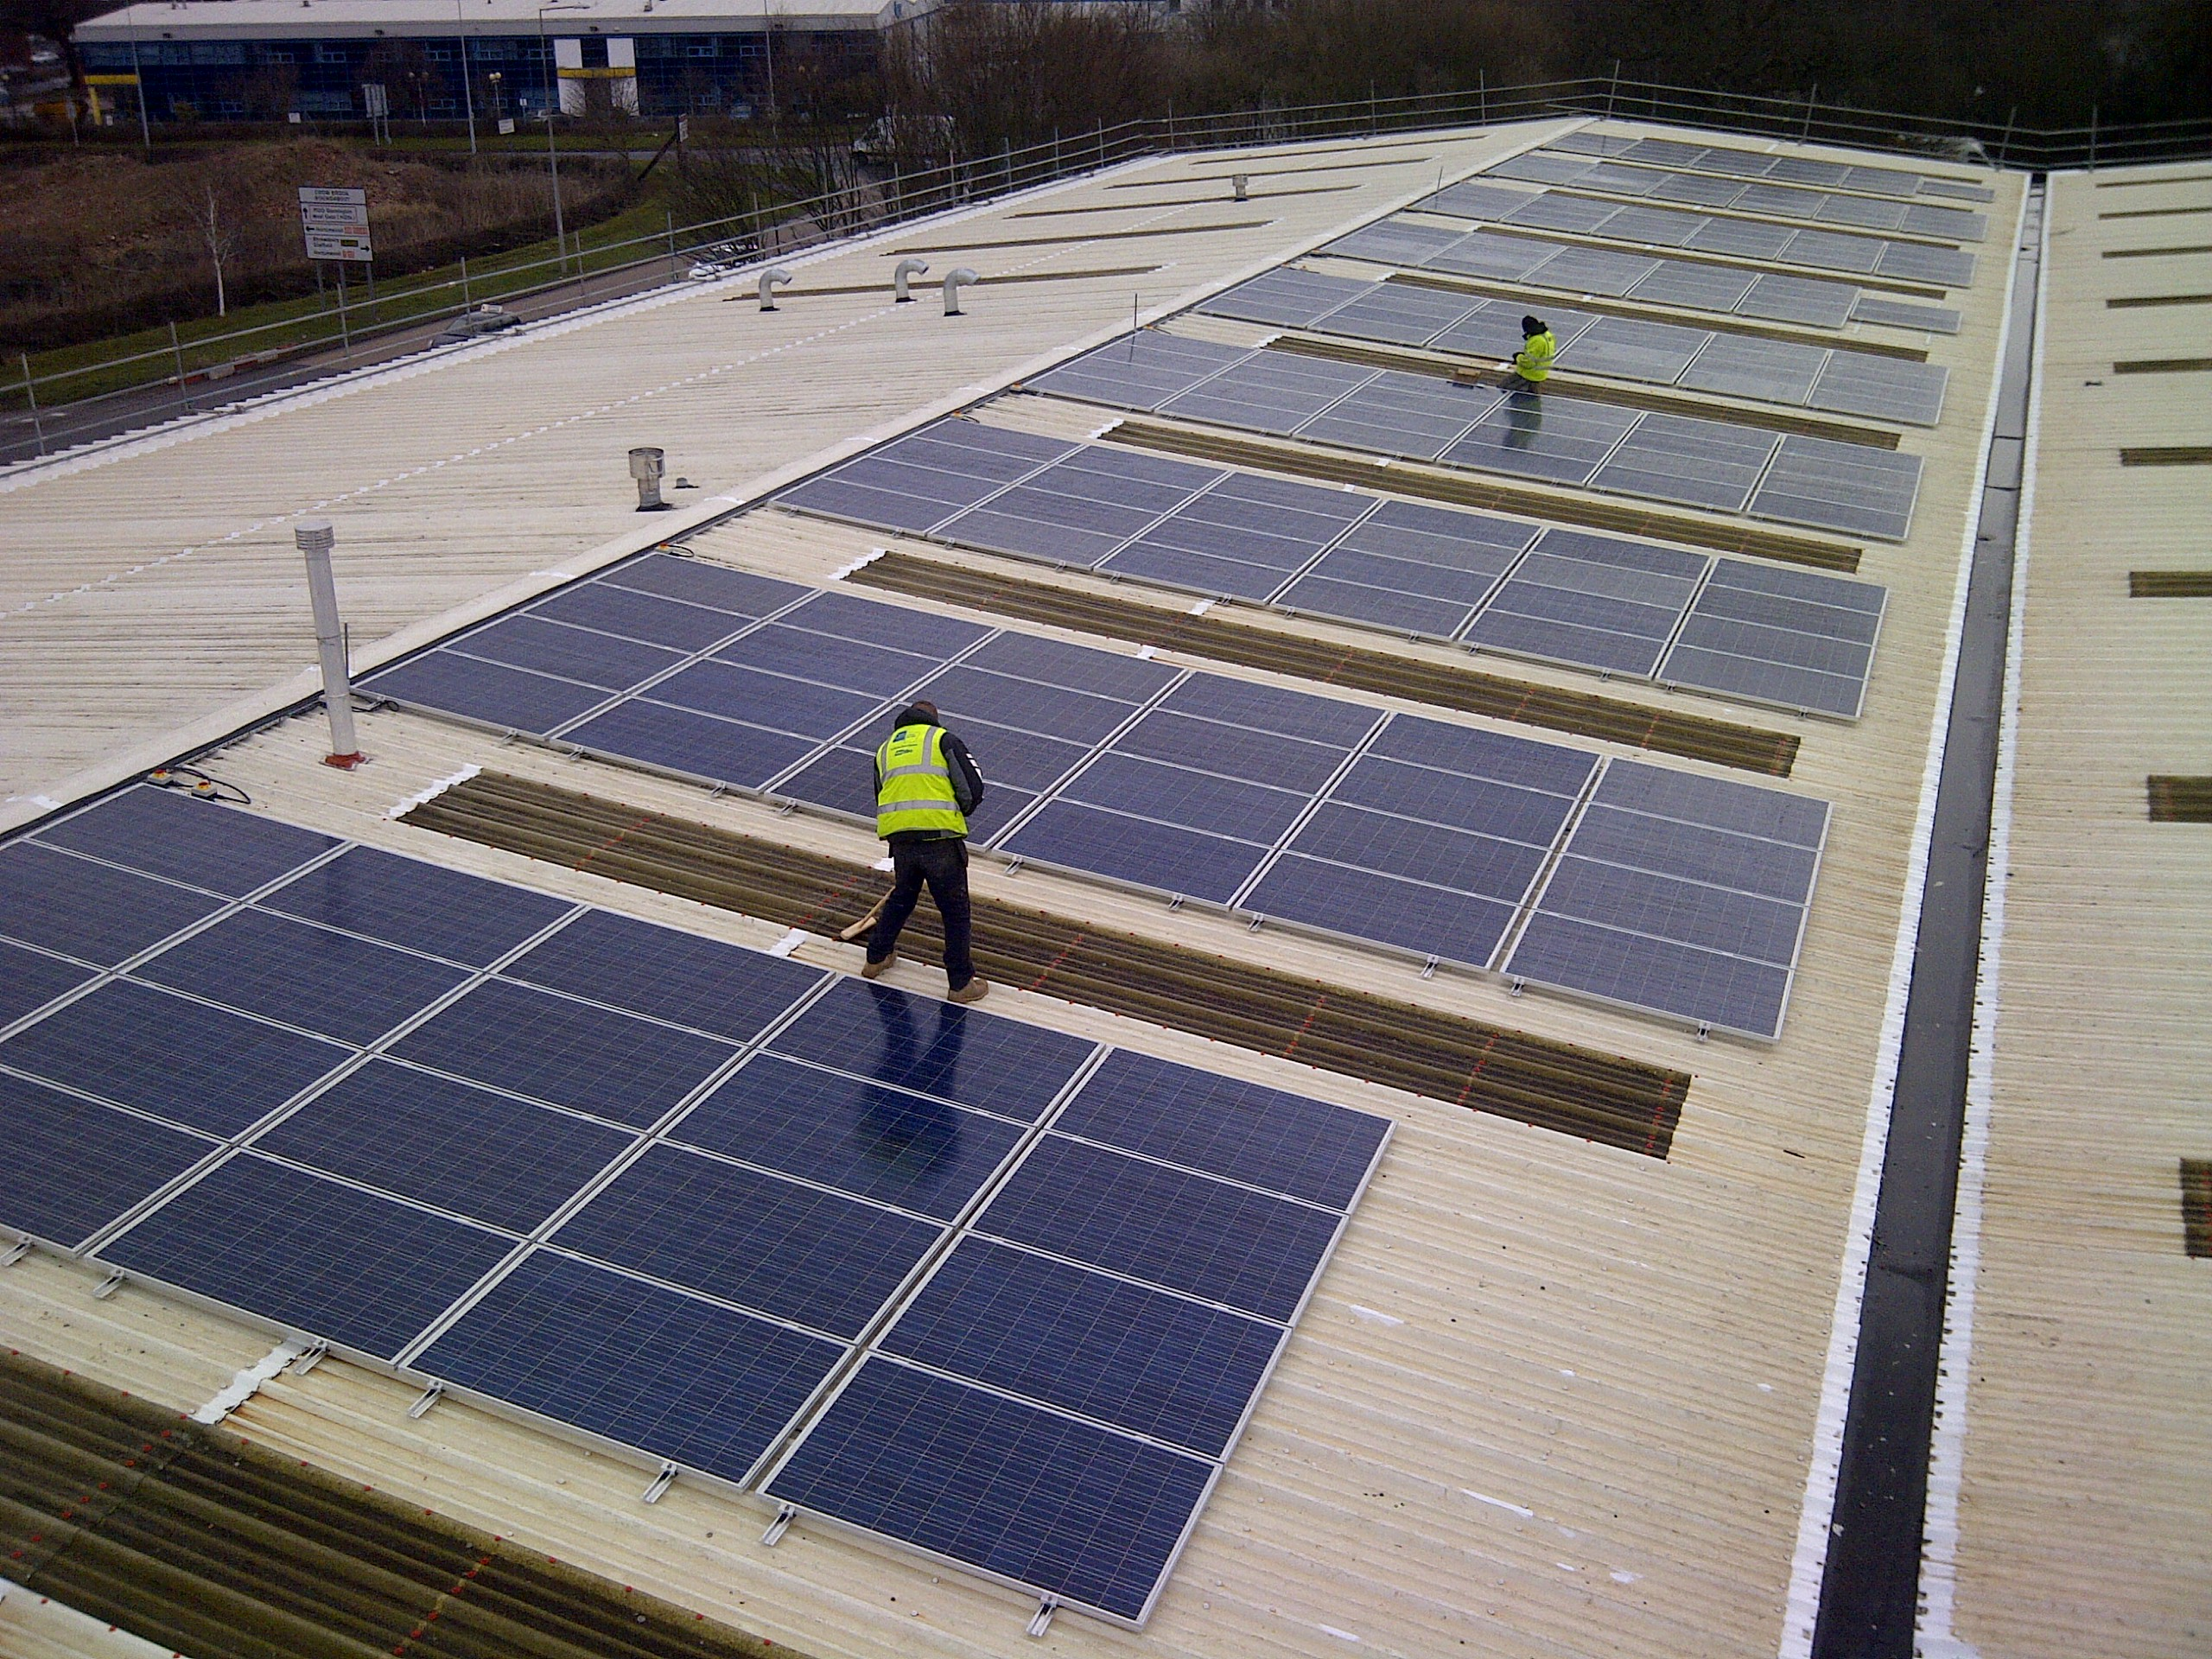 50 Kw solar panel array on the roof of Bastion House